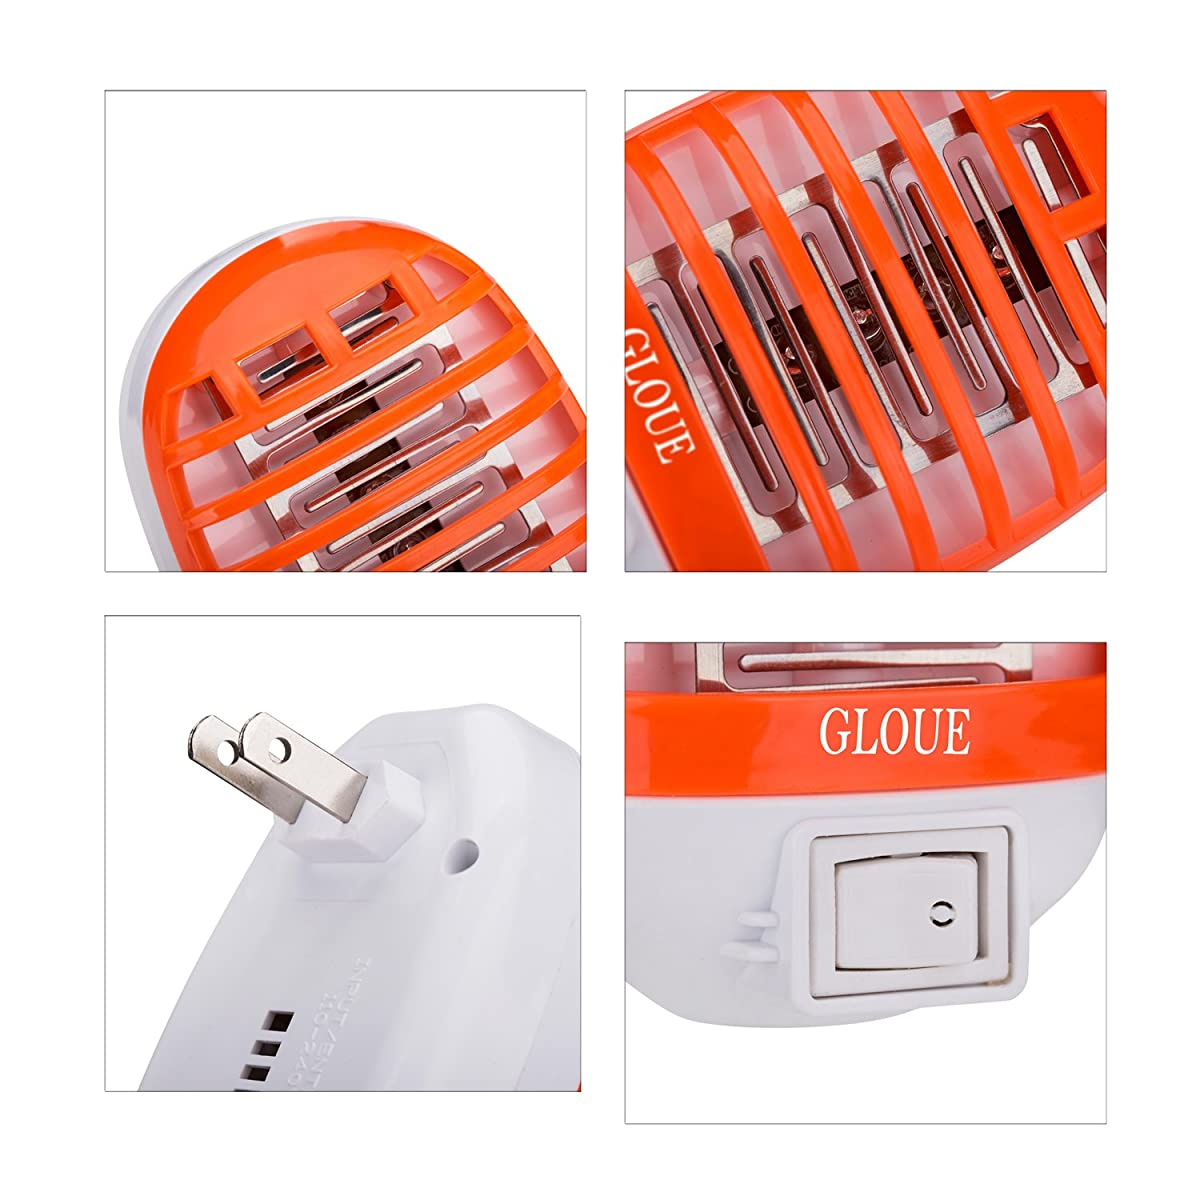 GLOUE Bug Zapper Electronic Insect Killer,Mosquito Killer Lamp,Eliminates Most Flying Pests! Night Lamp (Orange)